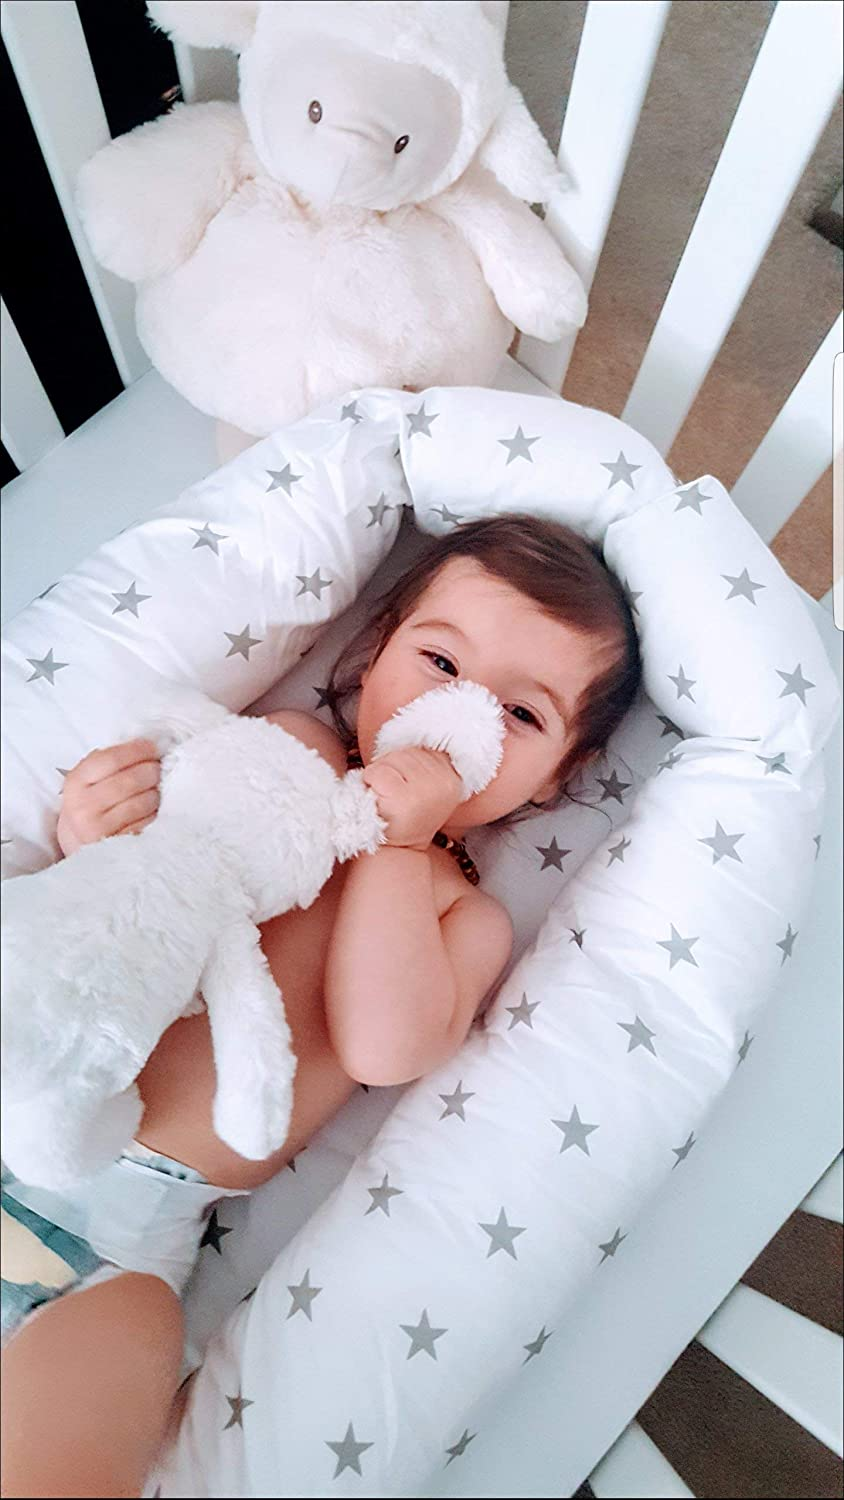 Daily bargain Max 50% OFF sale Baby nest with removable cover c portable bed size toddler